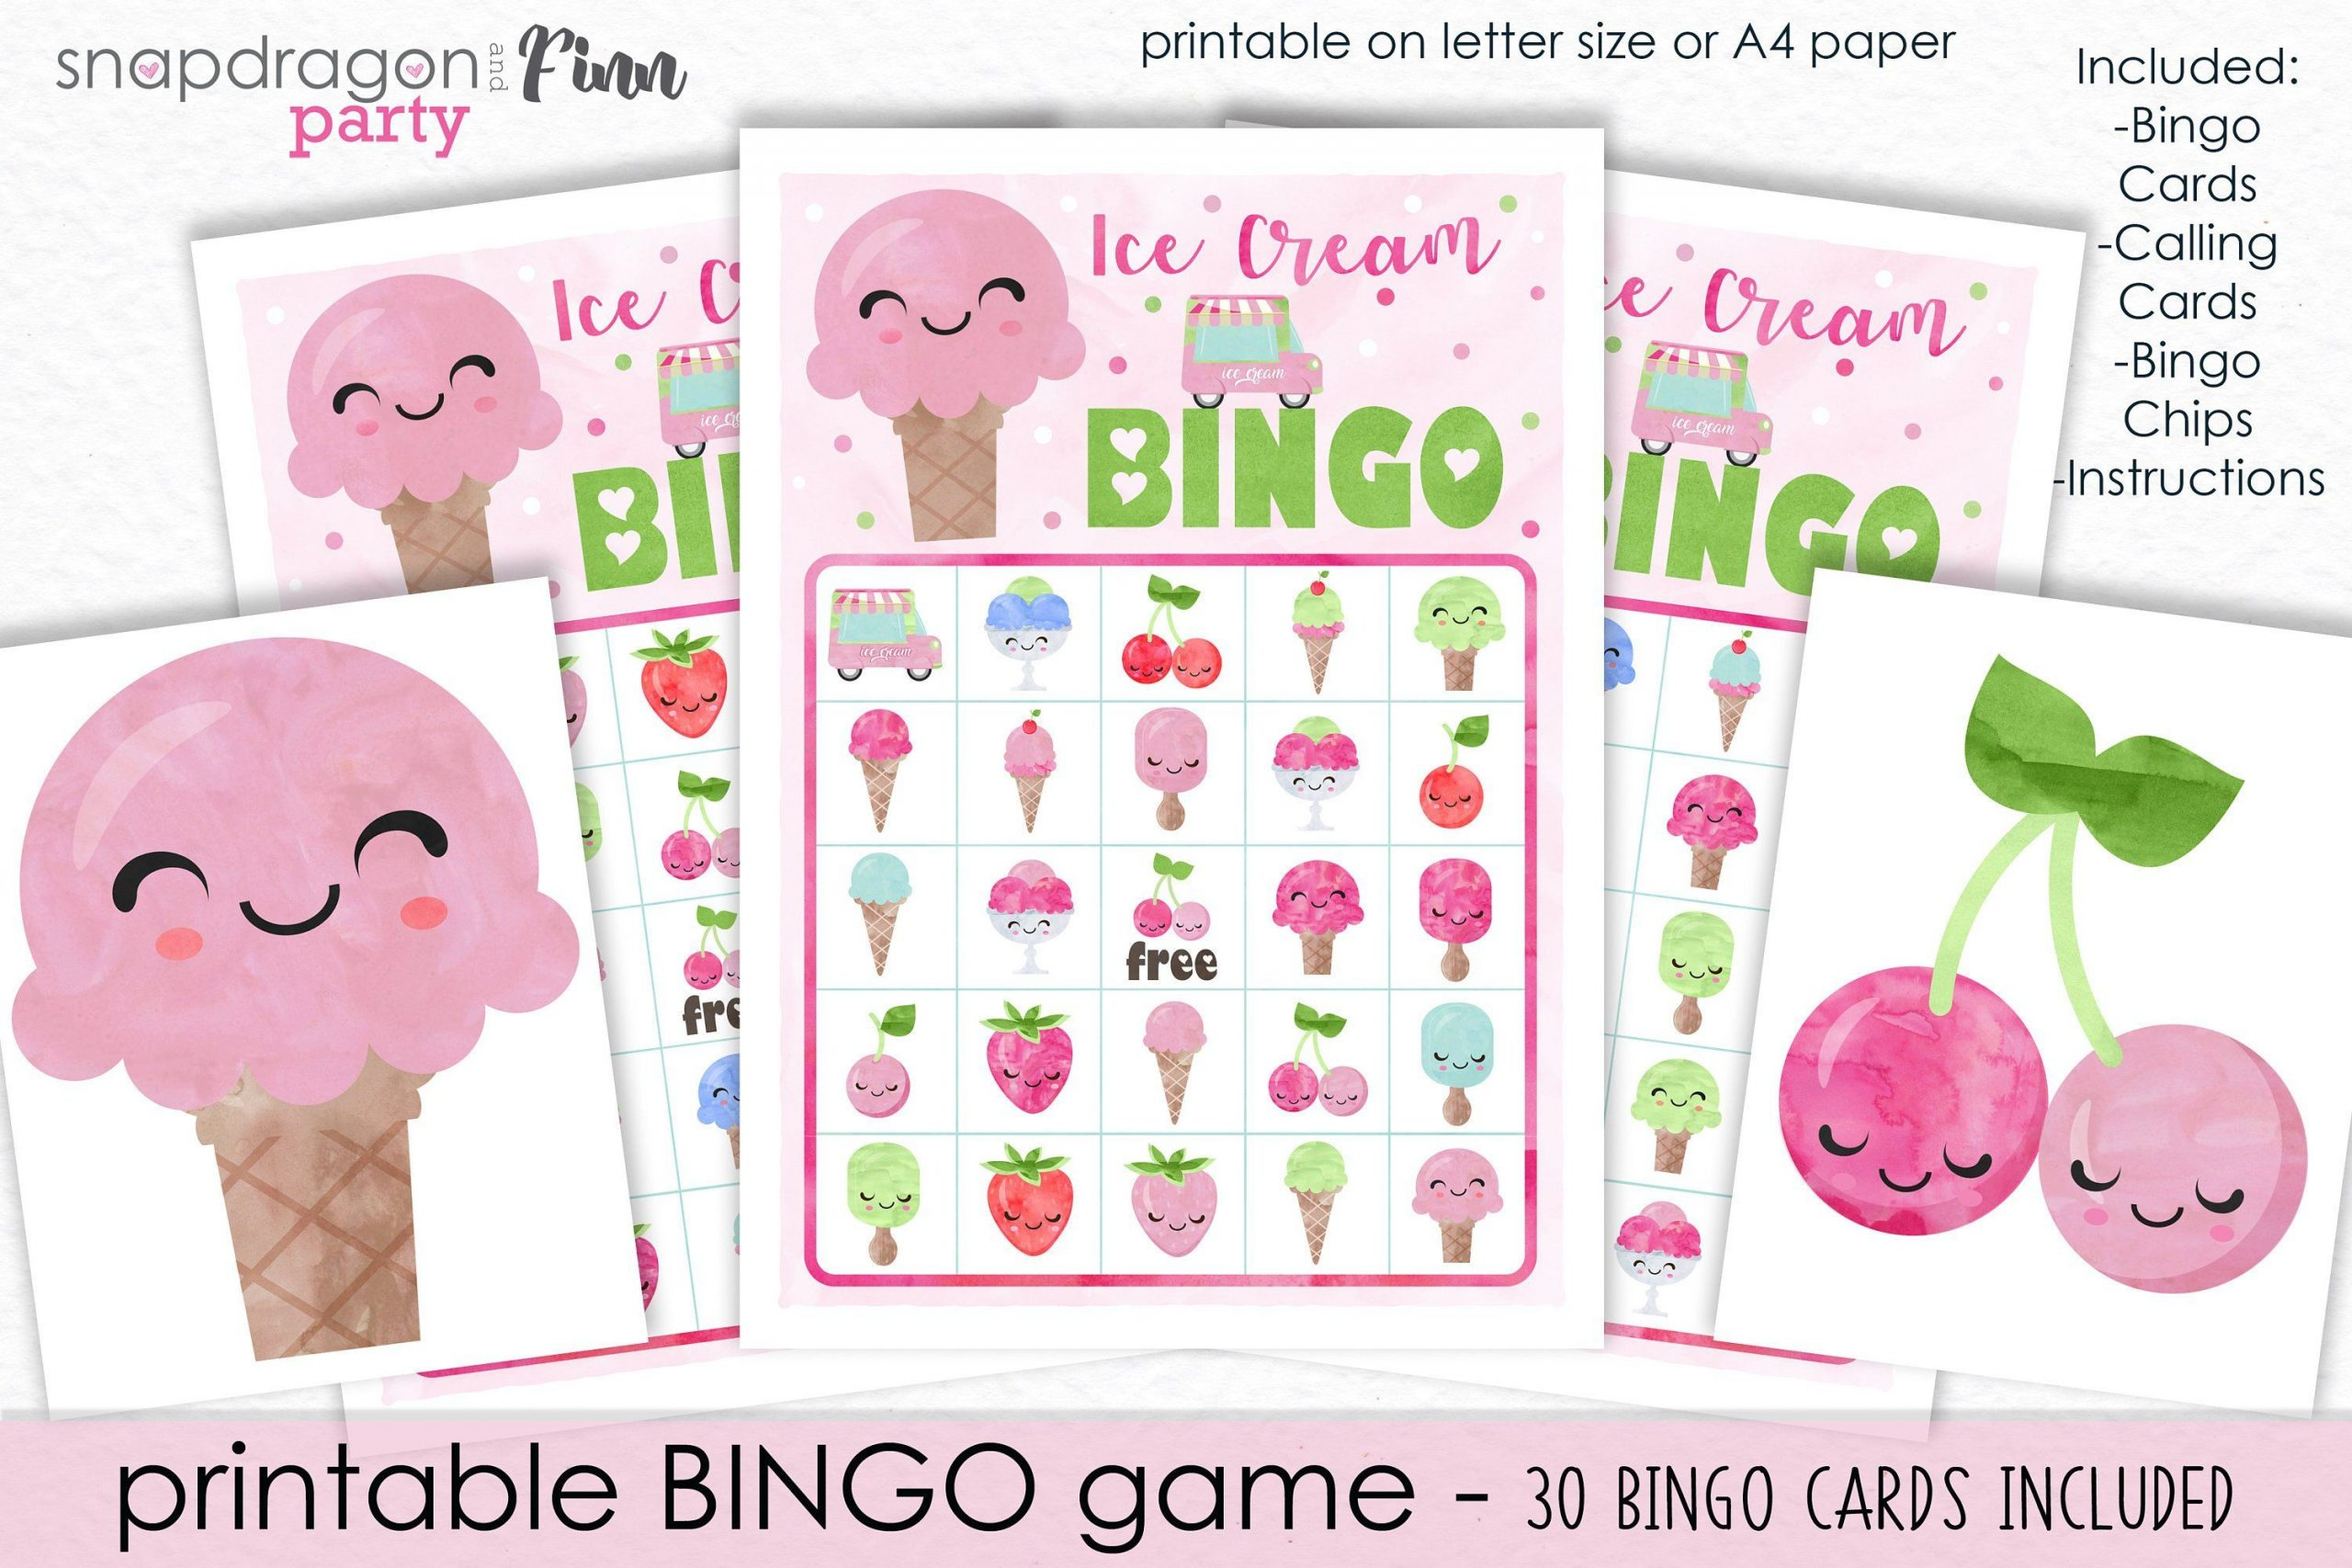 Ice Cream Bingo Printable Party Game - 30 Bingo Cards - Ice